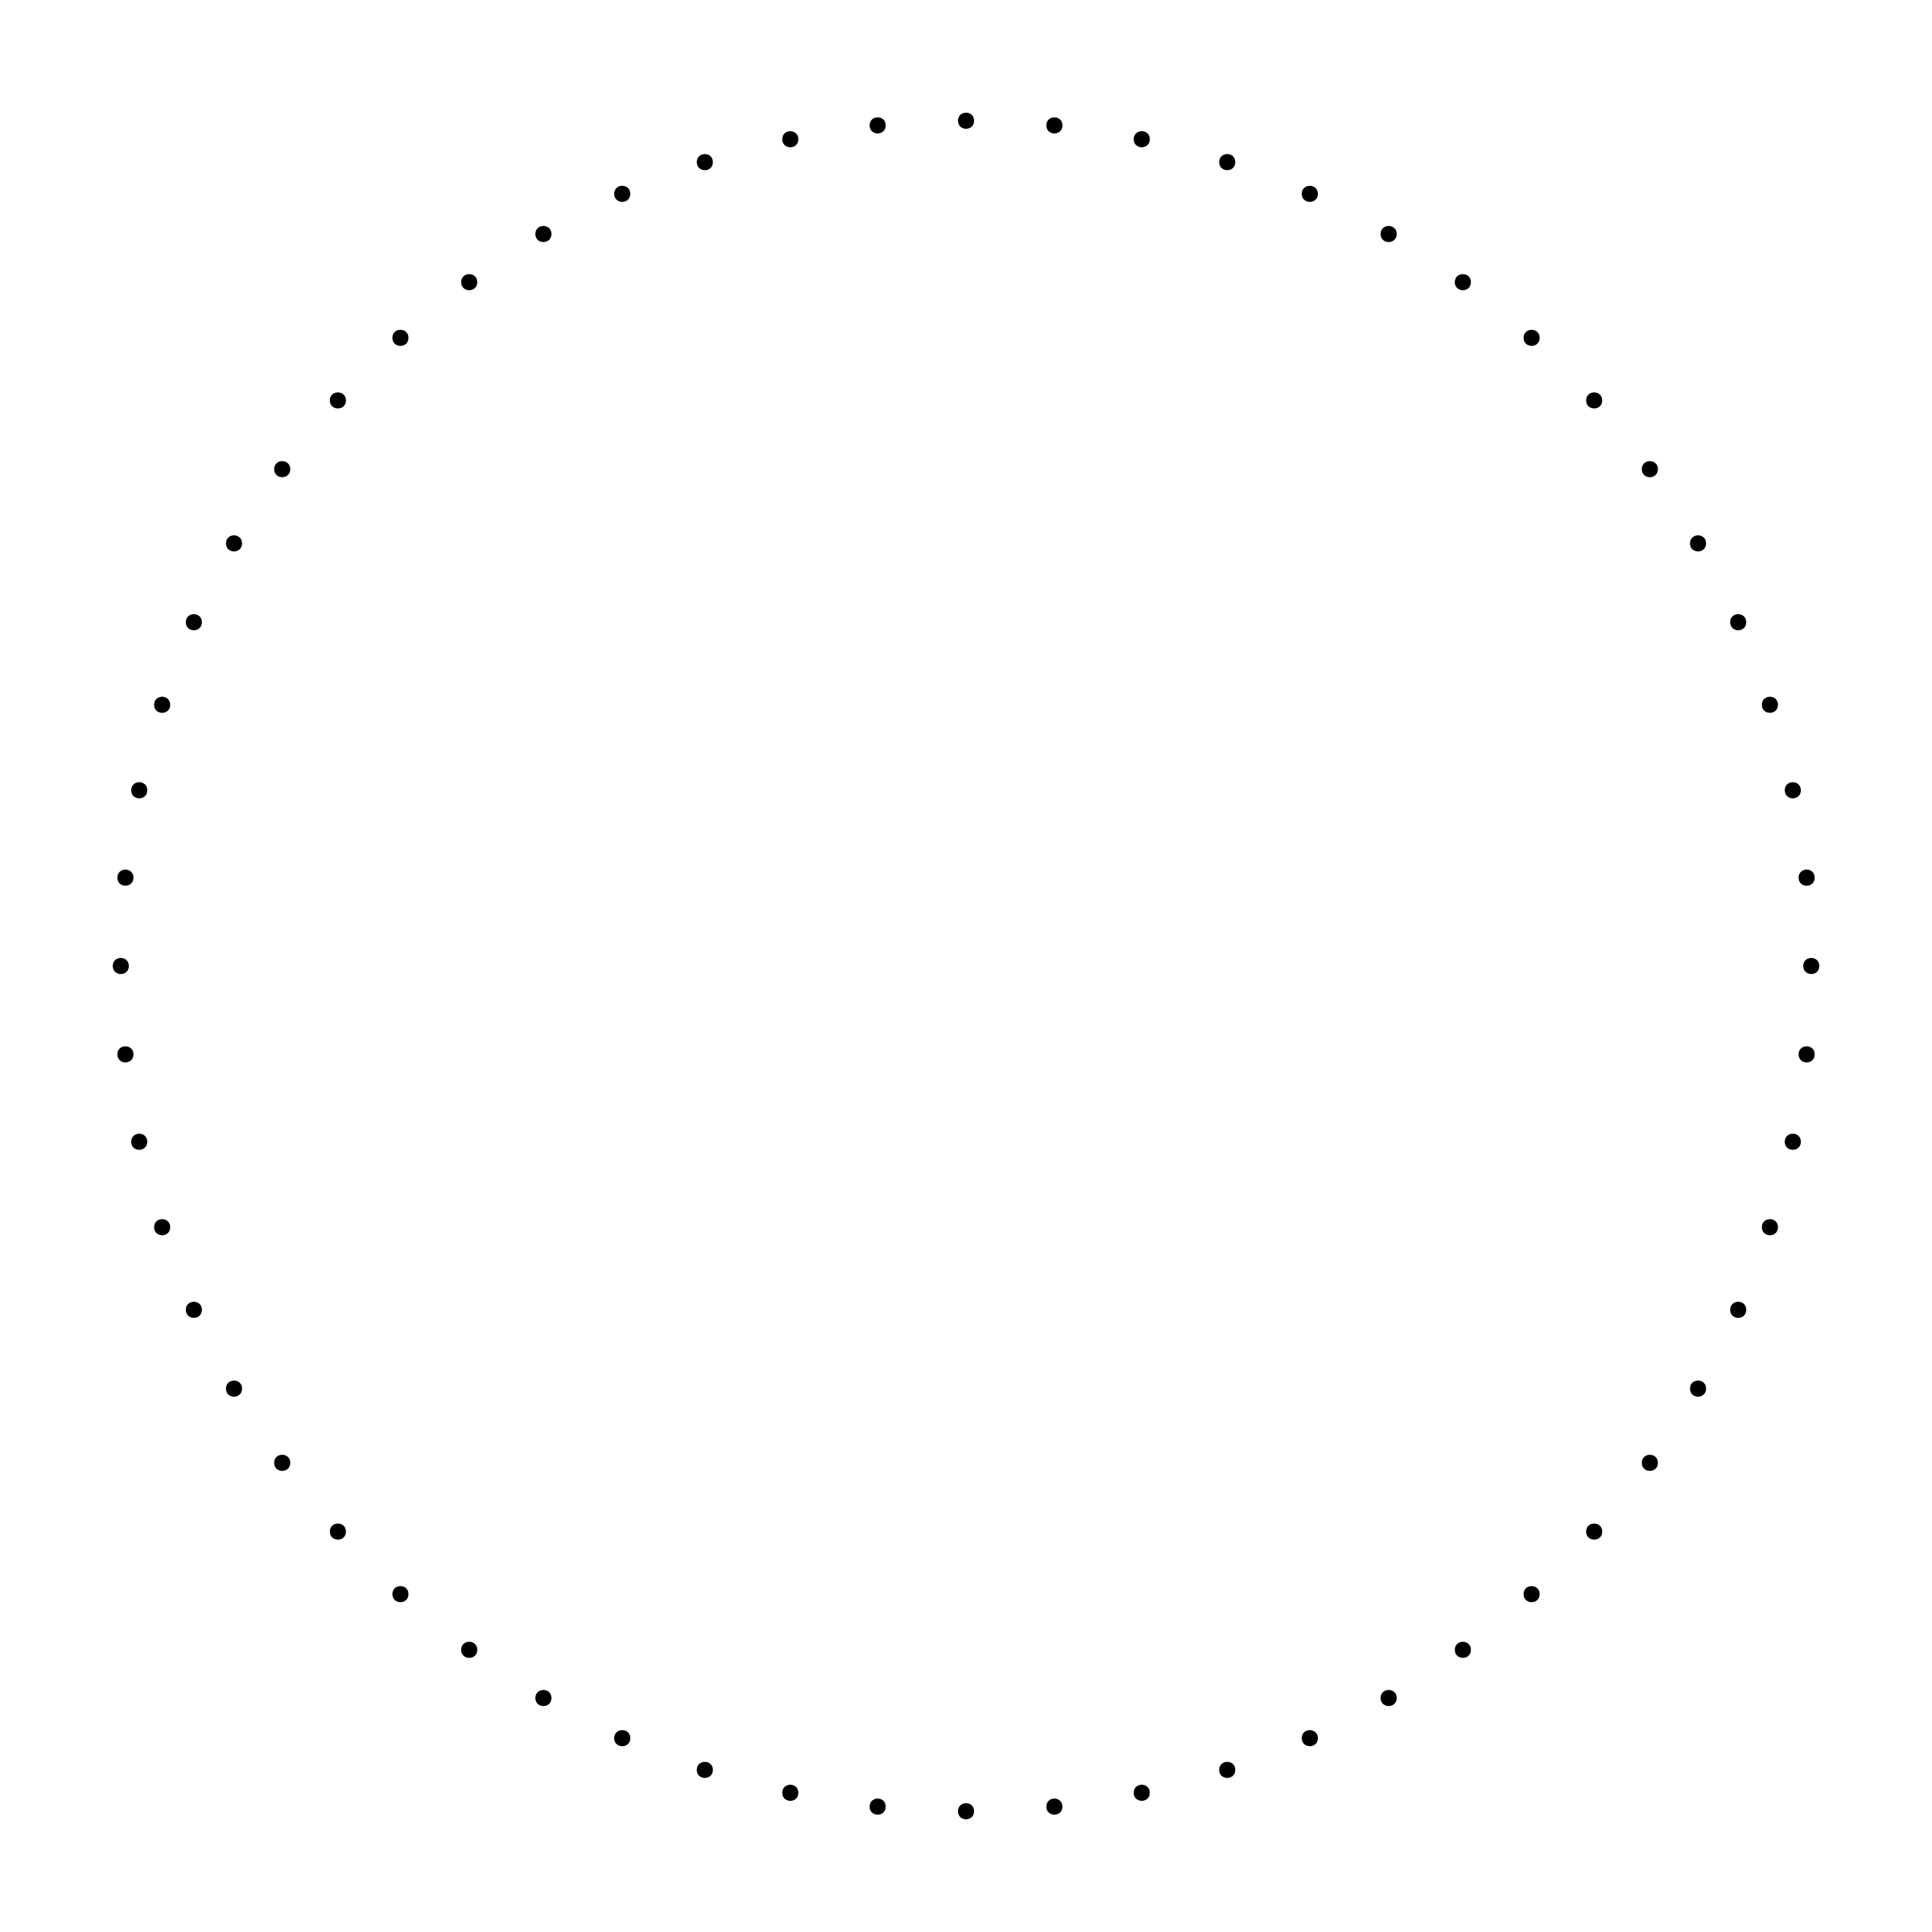 connect the 60 dots by 10binary